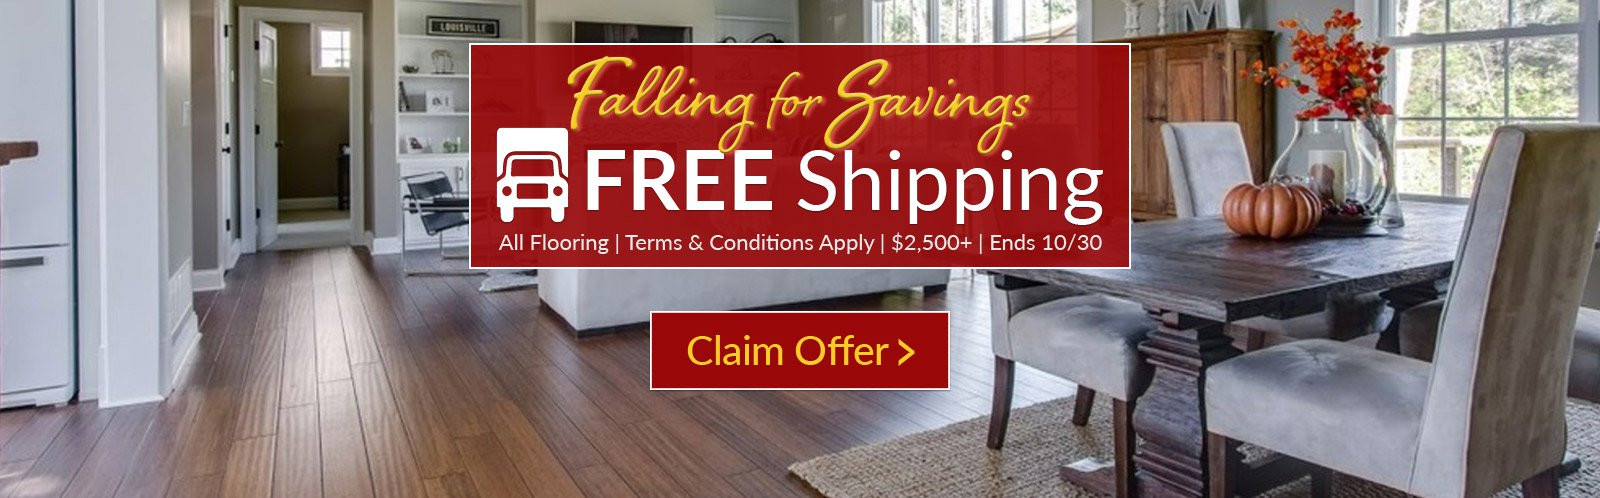 discount hardwood flooring los angeles of green building construction materials and home decor cali bamboo pertaining to your shopping cart is empty